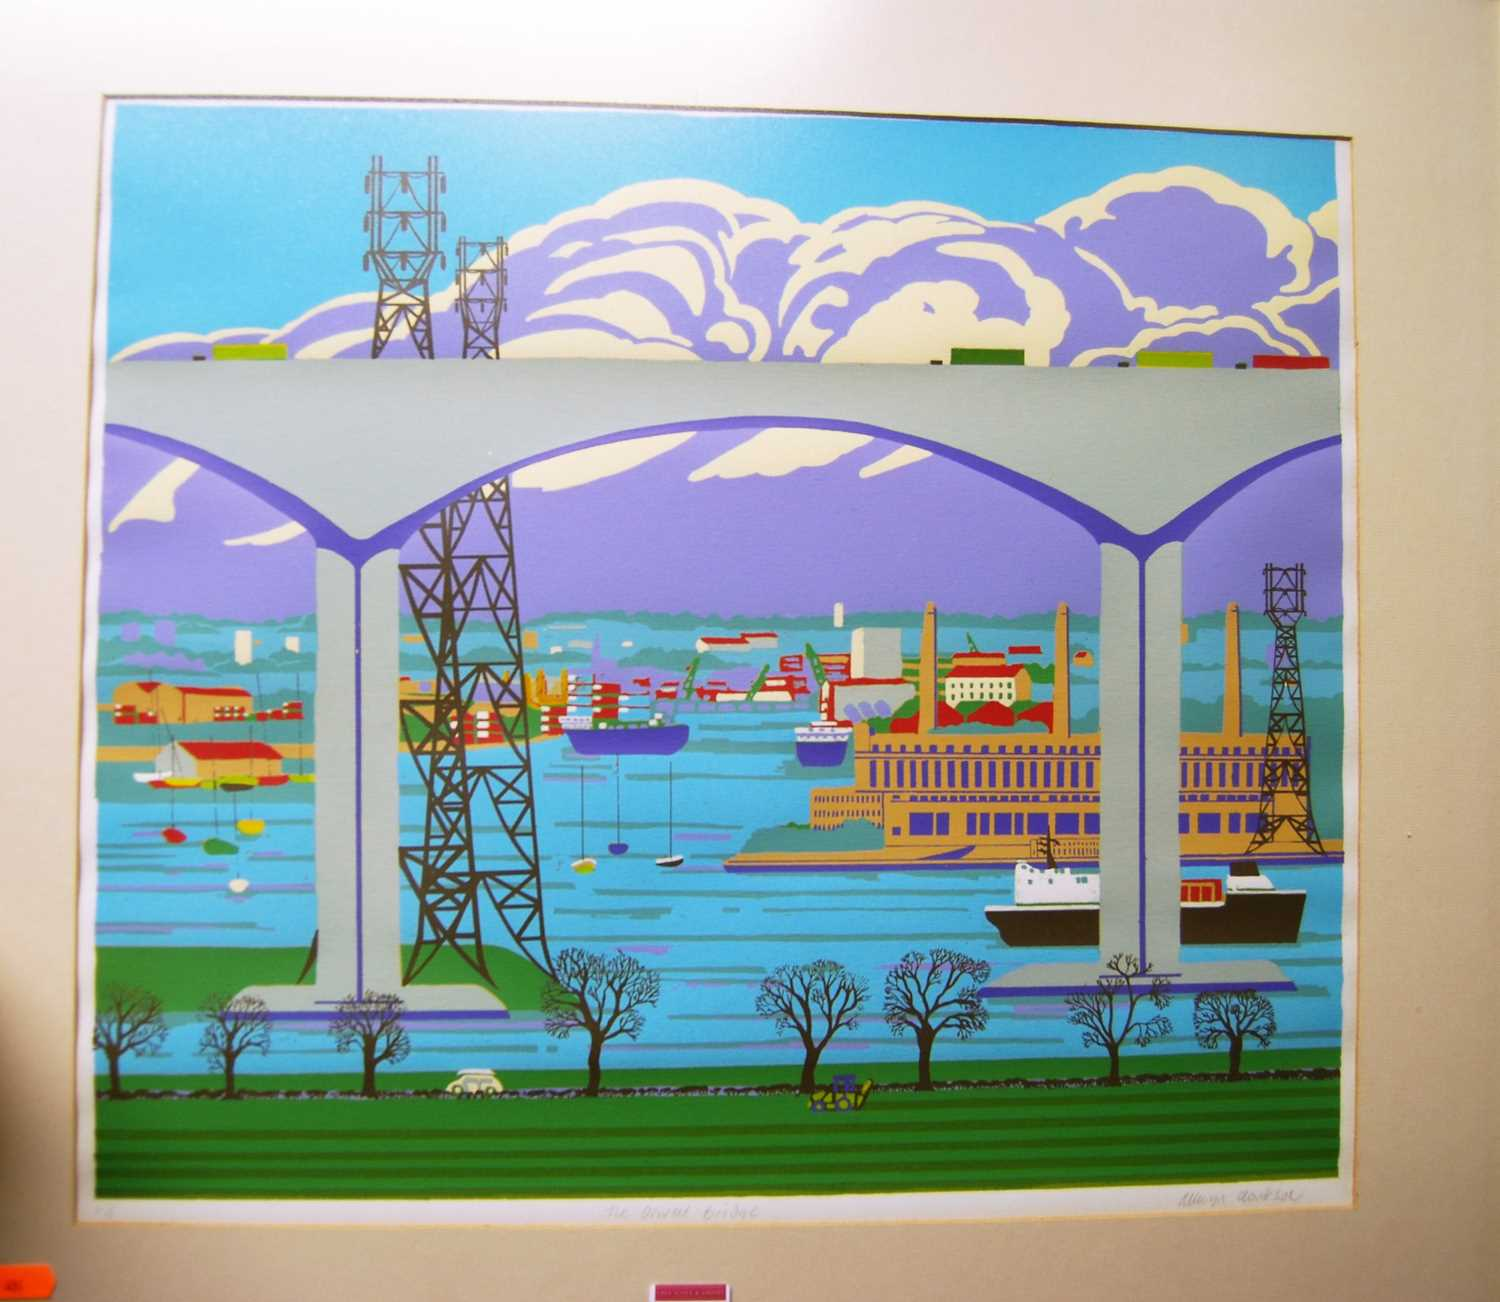 Allwyn Clarkson - The Orwell Bridge, limited edition lithograph, signed, titled and numbered in